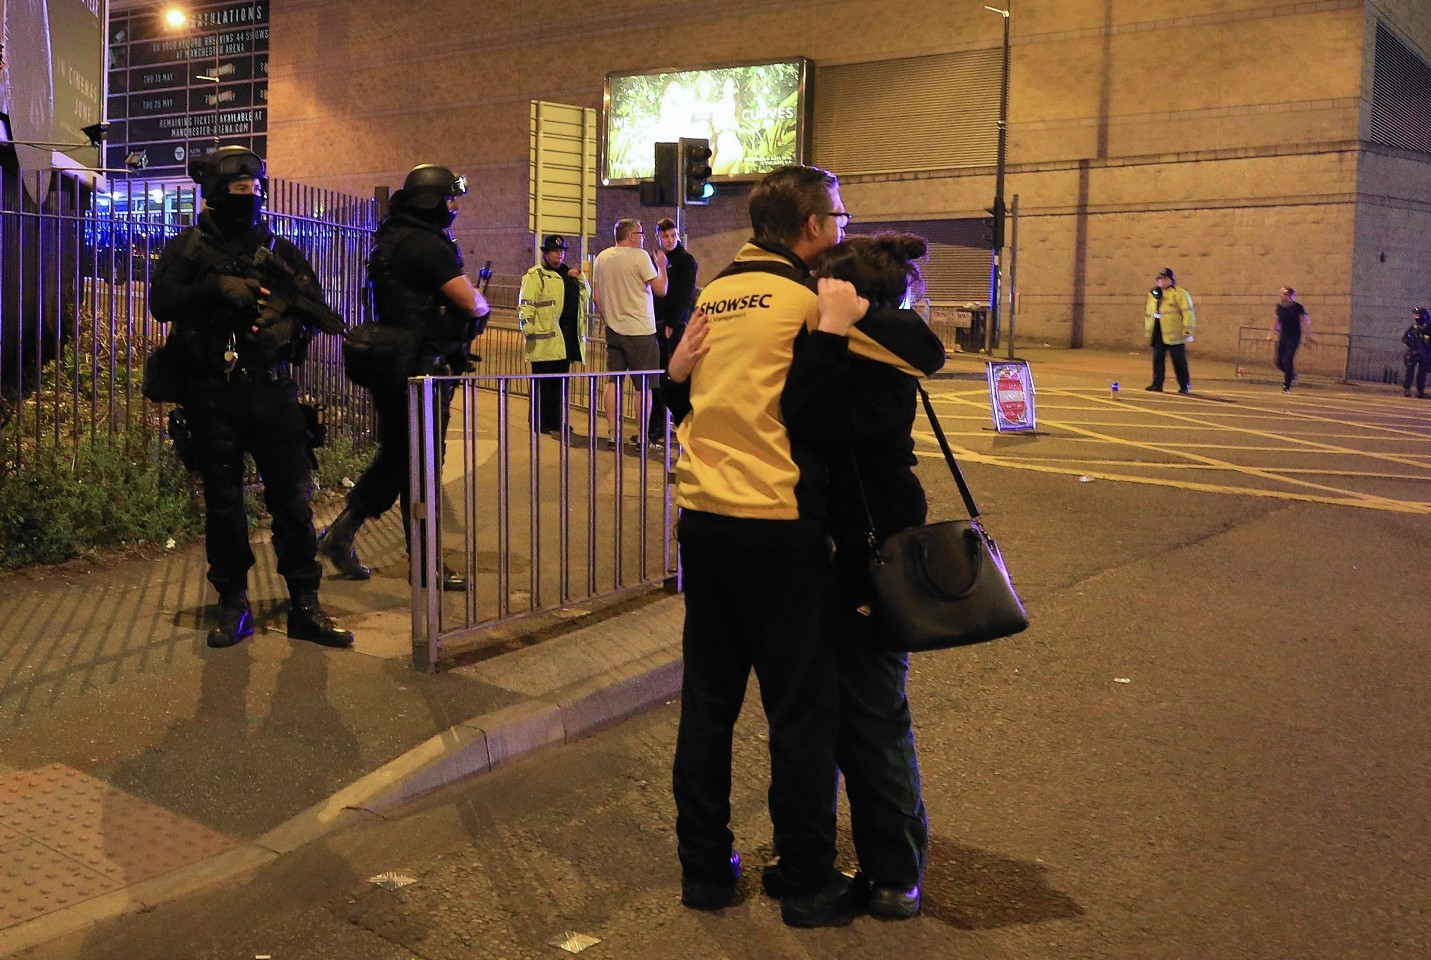 VIDEO: Everything we know about the Manchester Arena terror attack